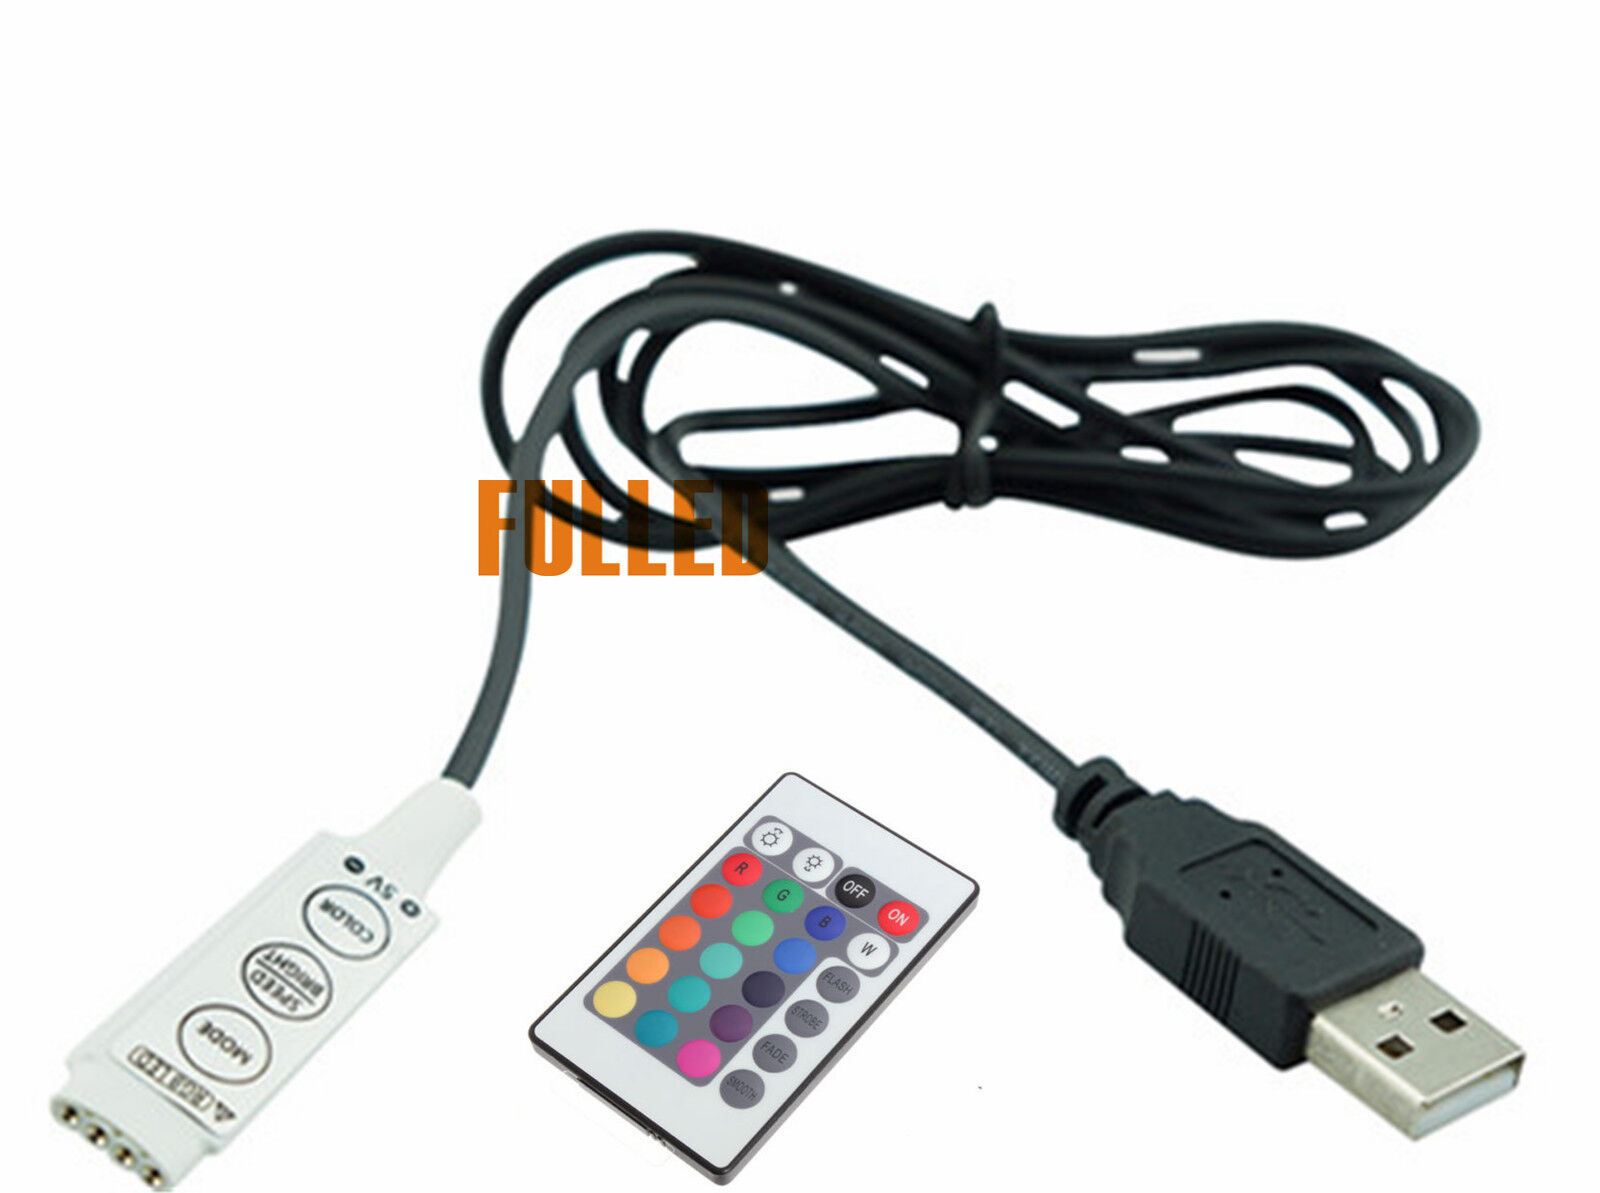 Kabel Box Batterie Box Usb Kabel Mit Mini Controller Dc Plug Für Led